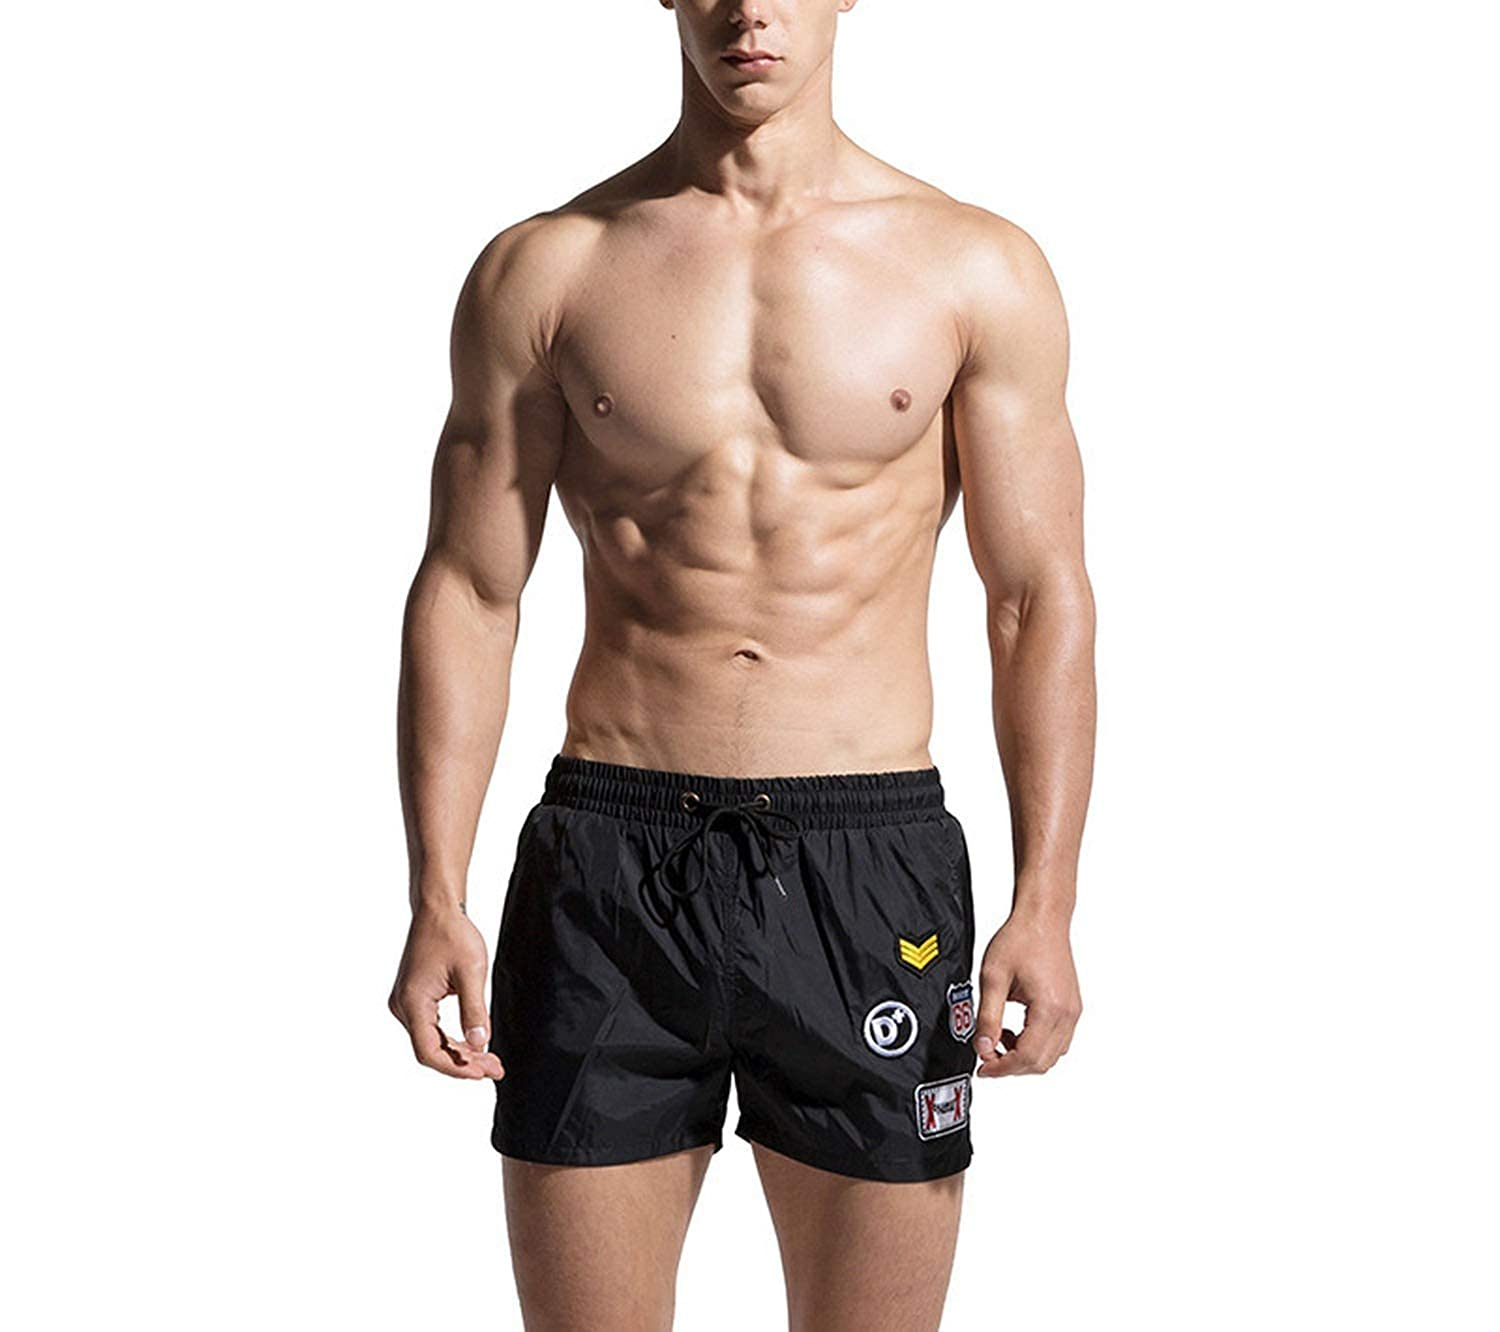 e9c3c6e23c romantico Boardshort Mens Swimming Shorts Board Swim Shorts Trunks Sea  Bermuda Surfing Bathing Suit Swimsuit | Amazon.com